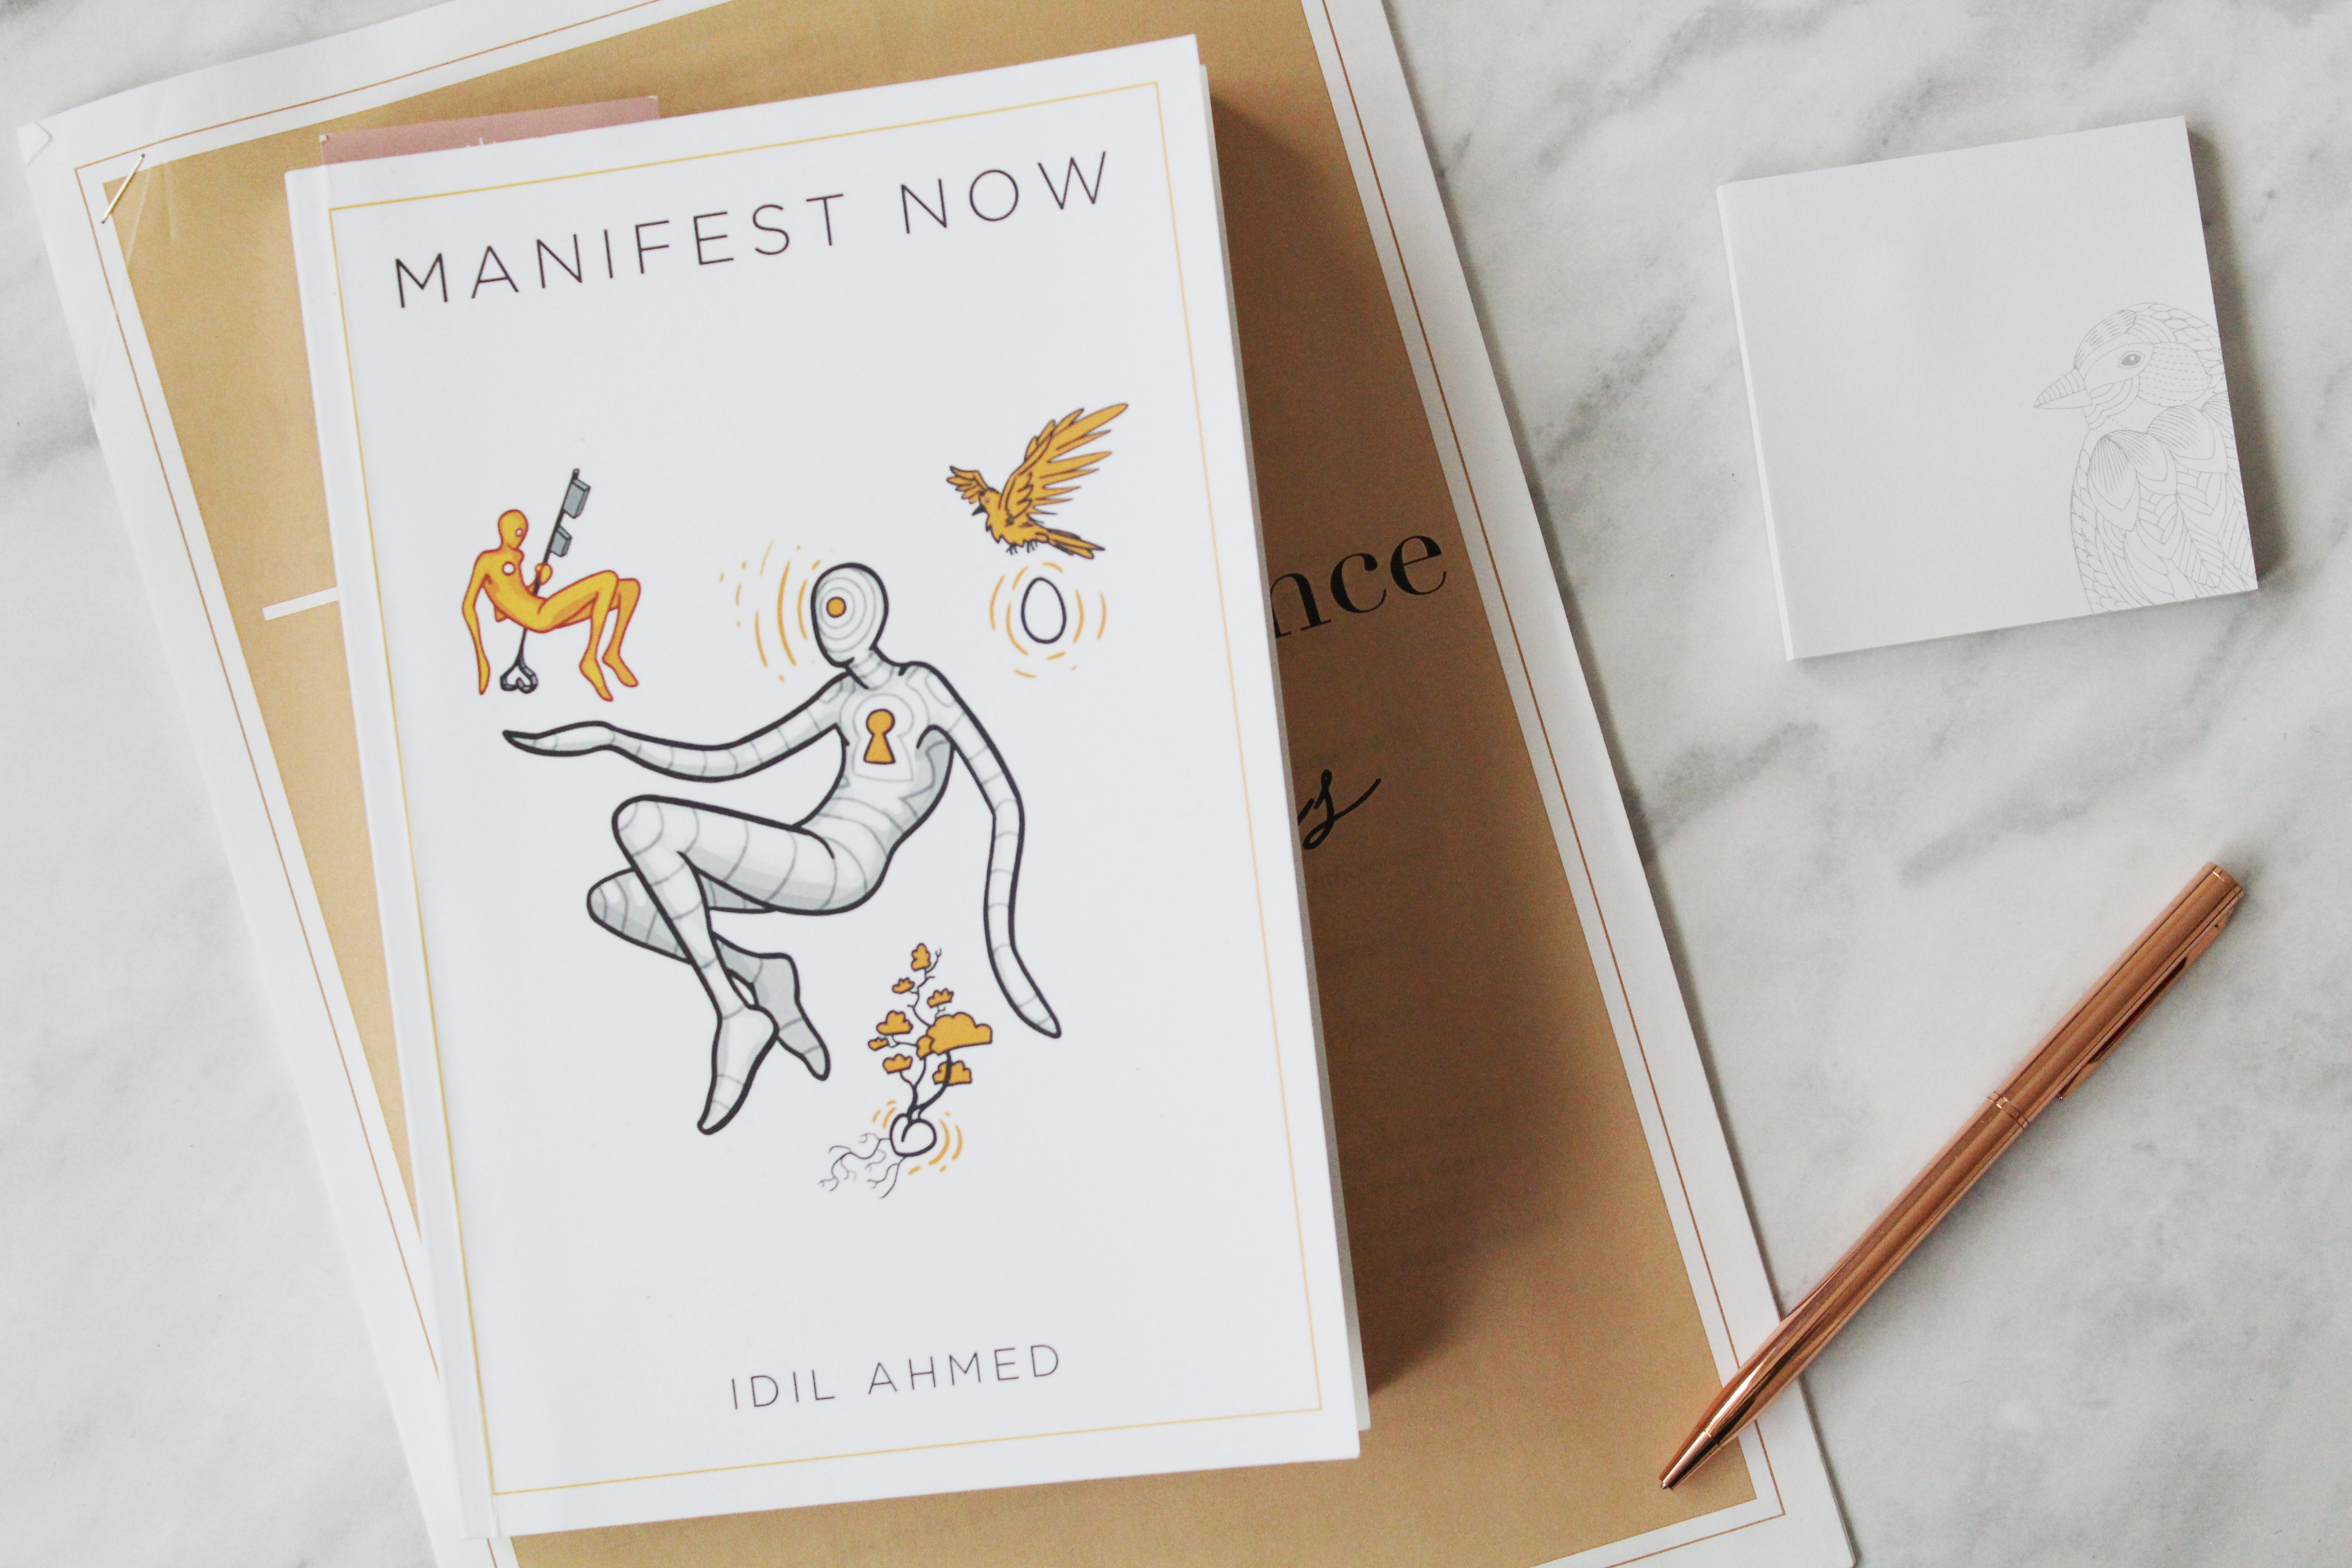 manifest now book